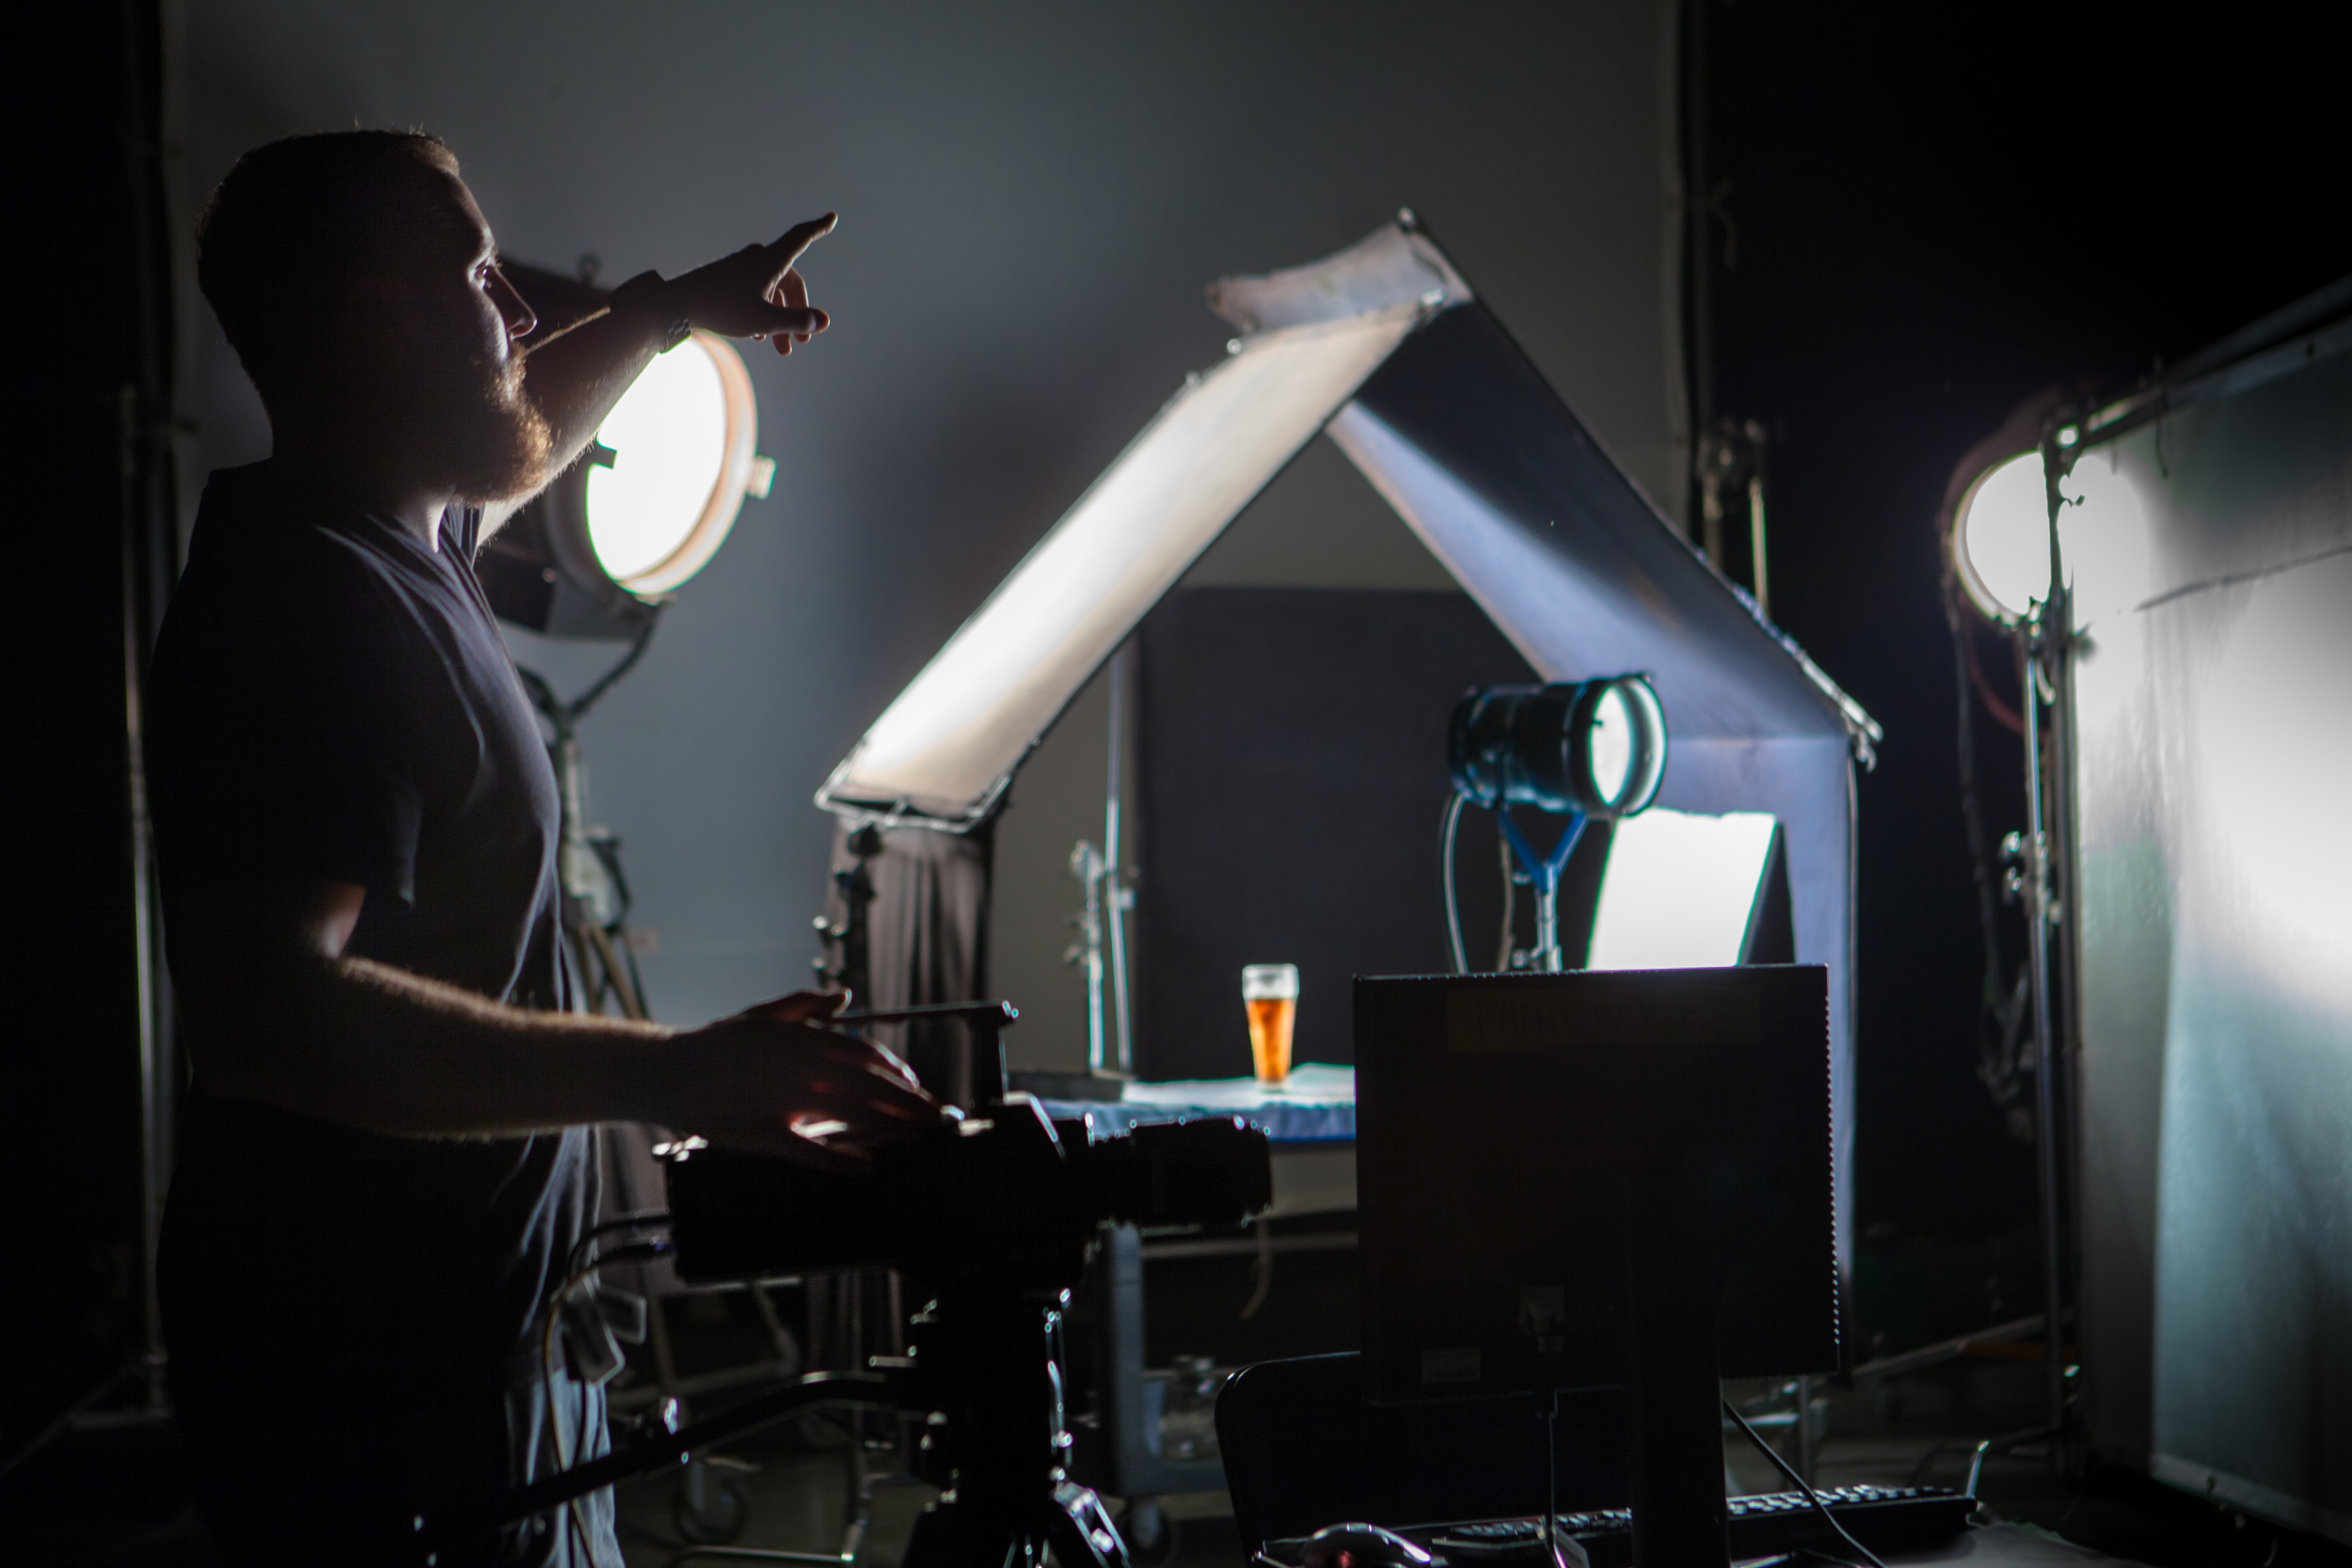 MAKINGTHAT BEER SPARKLE!   Our Production Manager, Dave Lion, getting his lights set.  In order to s  hoot  up to 1200 frames per second, an abundance of light is needed to compensate for the high frame rate.  Here we have two 10-thousand watt fernels andan open-face 2K,all to light one glass of beer onthe Phantom camera. Sometimes bigger really is better. Try replicating these shots on youriPhone!